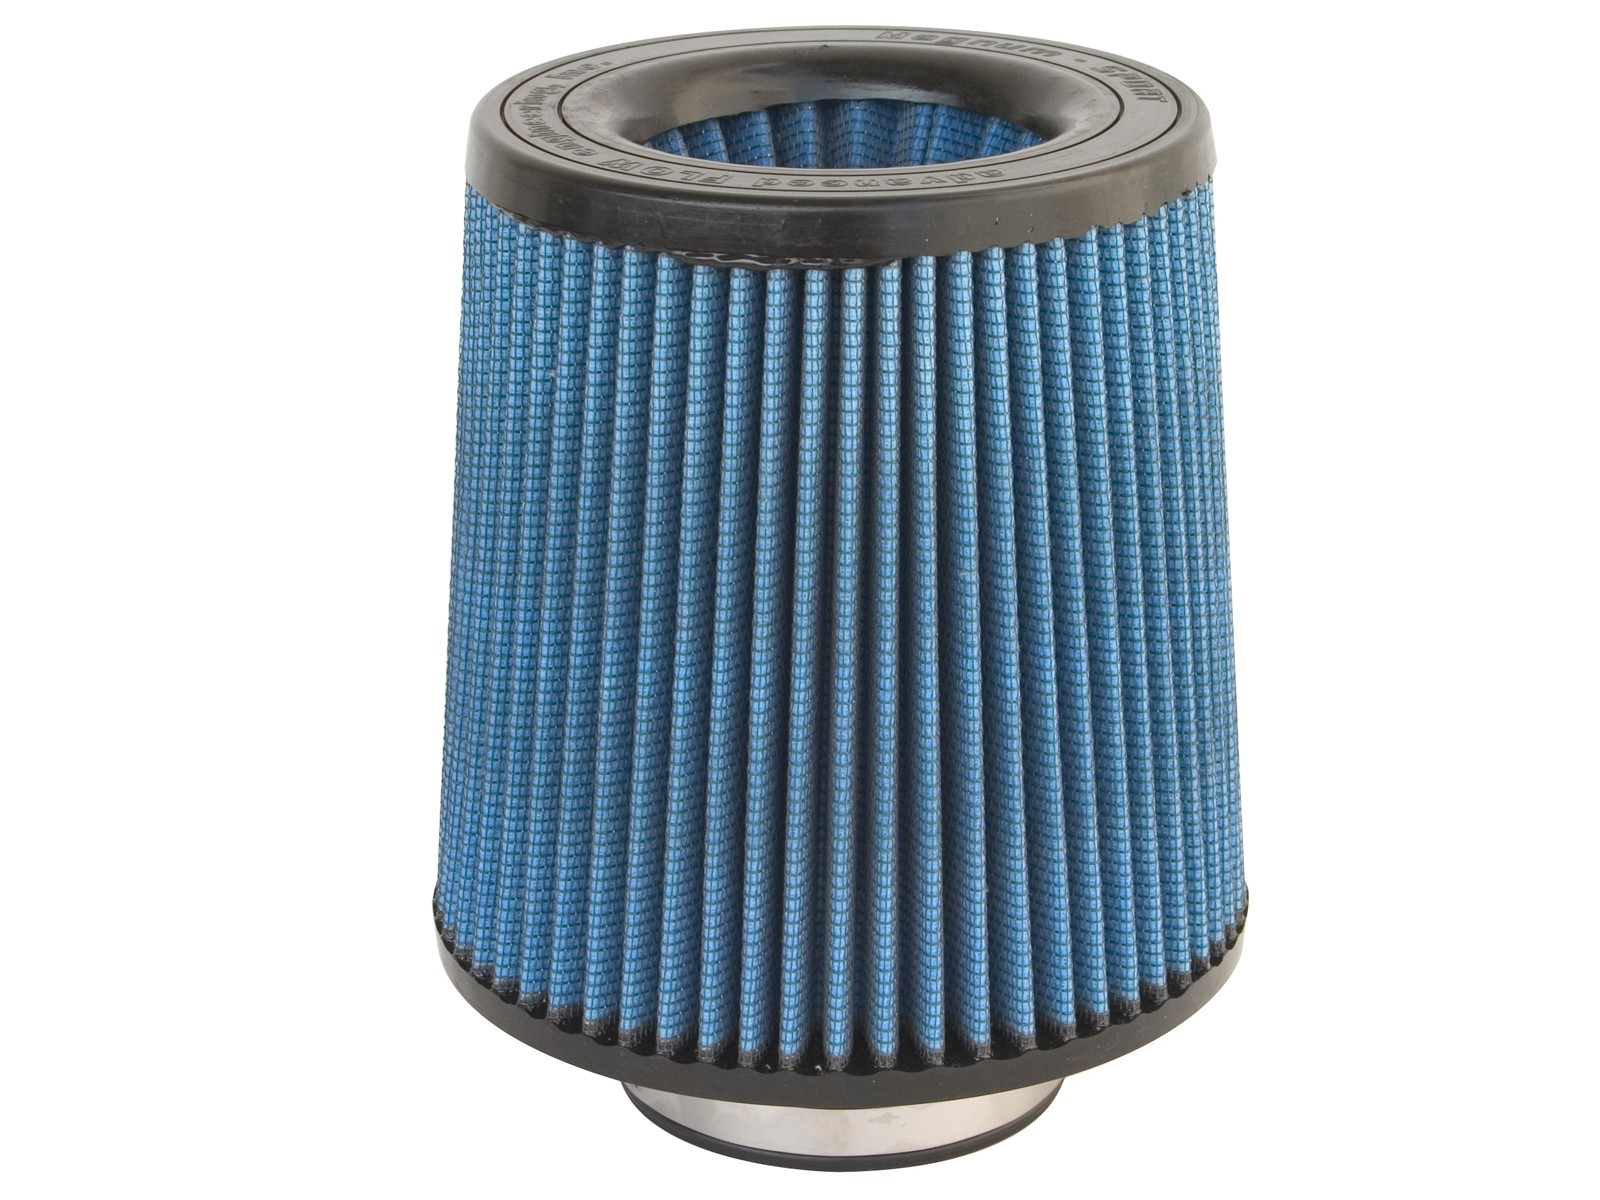 aFe POWER 24-91029 Magnum FLOW Pro 5R Air Filter